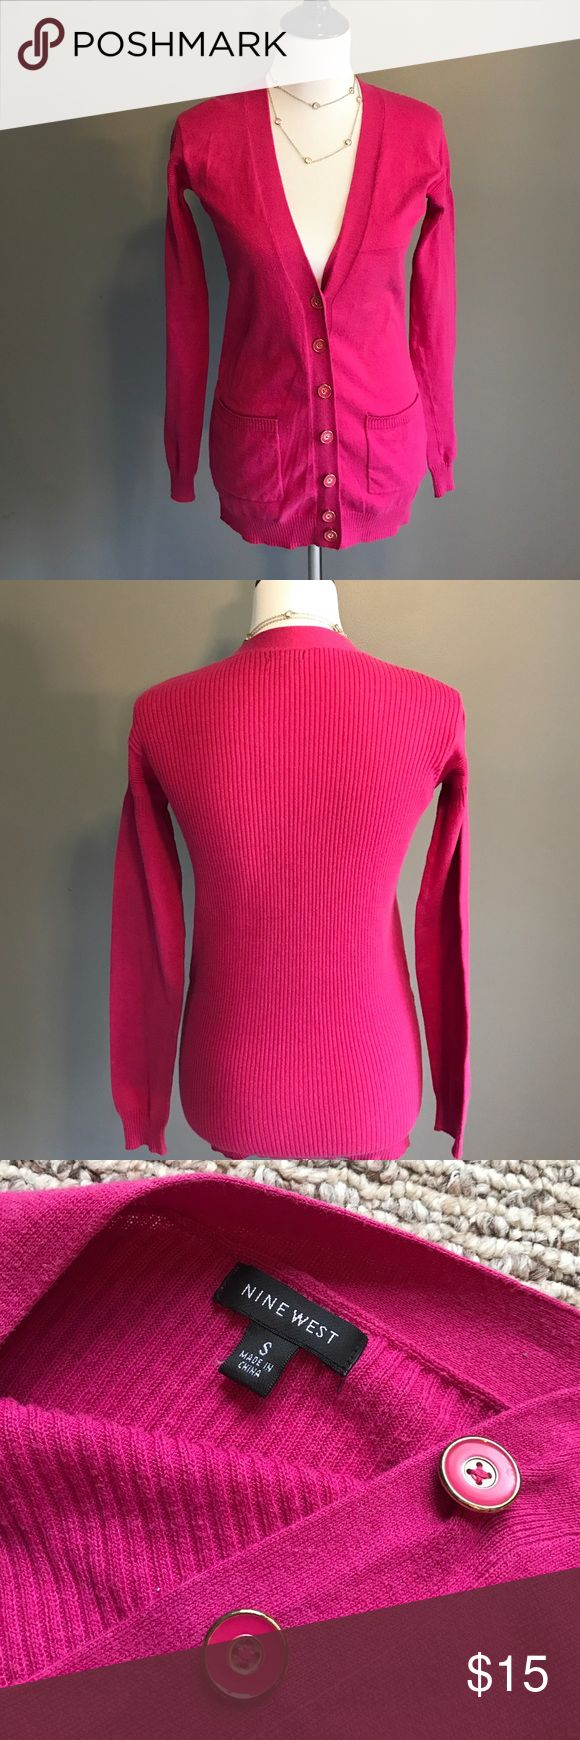 Nine West ladies S hot pink gold button cardigan Nine West Ladies small hot pink with gold accented buttons, robbed details. Extra long 27.5 in shoulder to hem. Flattering fit. Good condition but worn- slight pilling Nine West Sweaters Cardigans